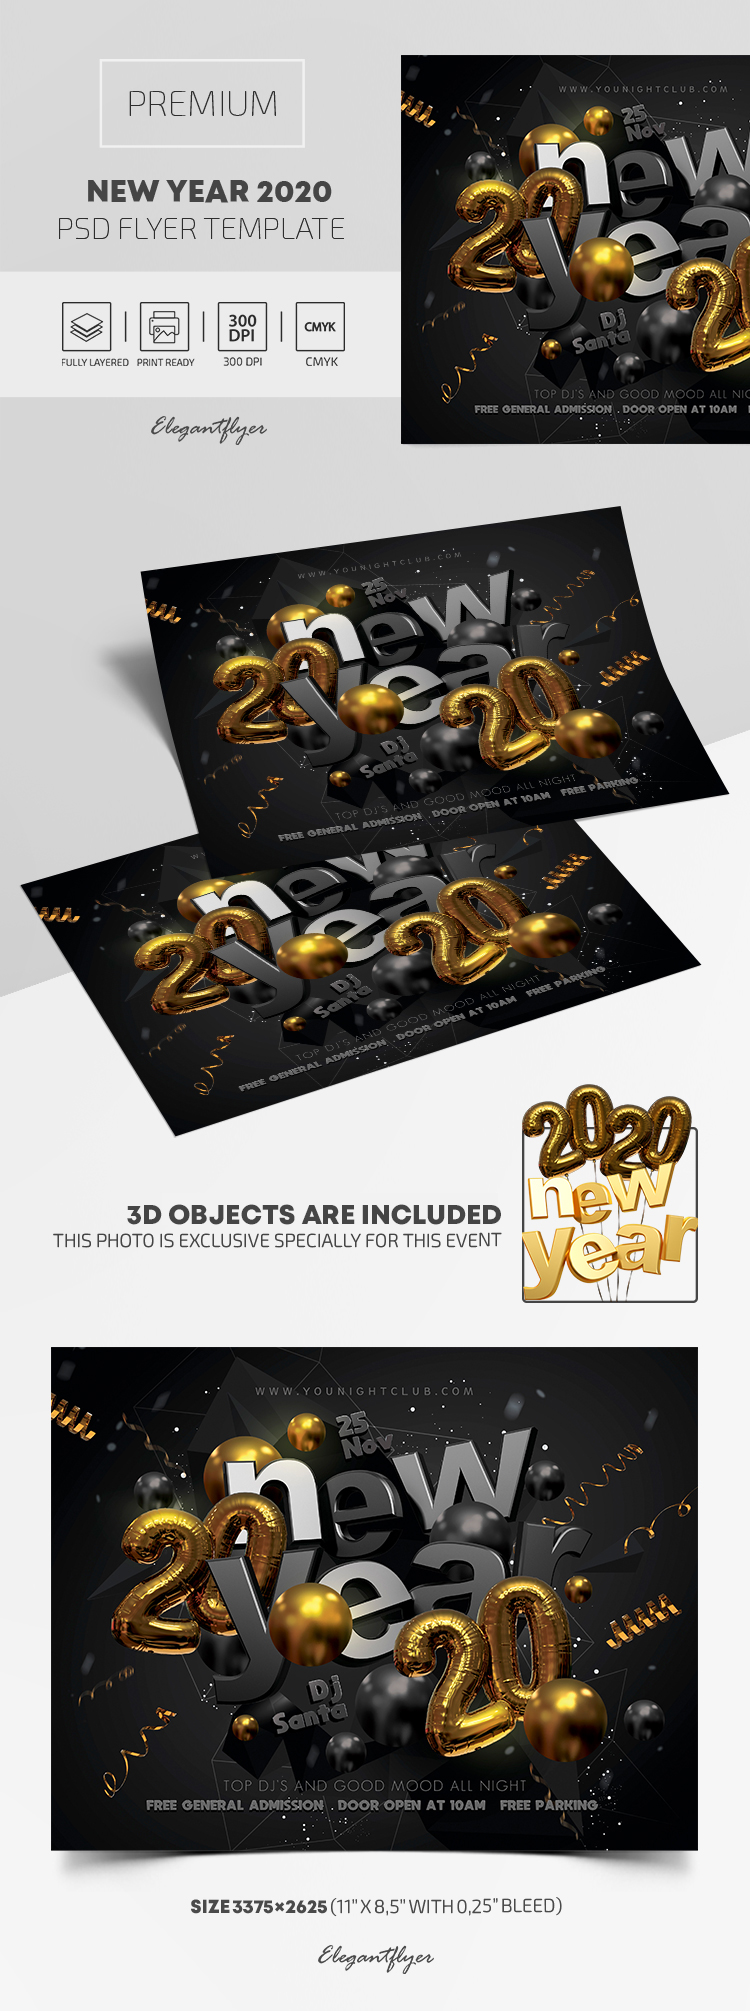 New Year 2020 – Premium PSD Flyer Template